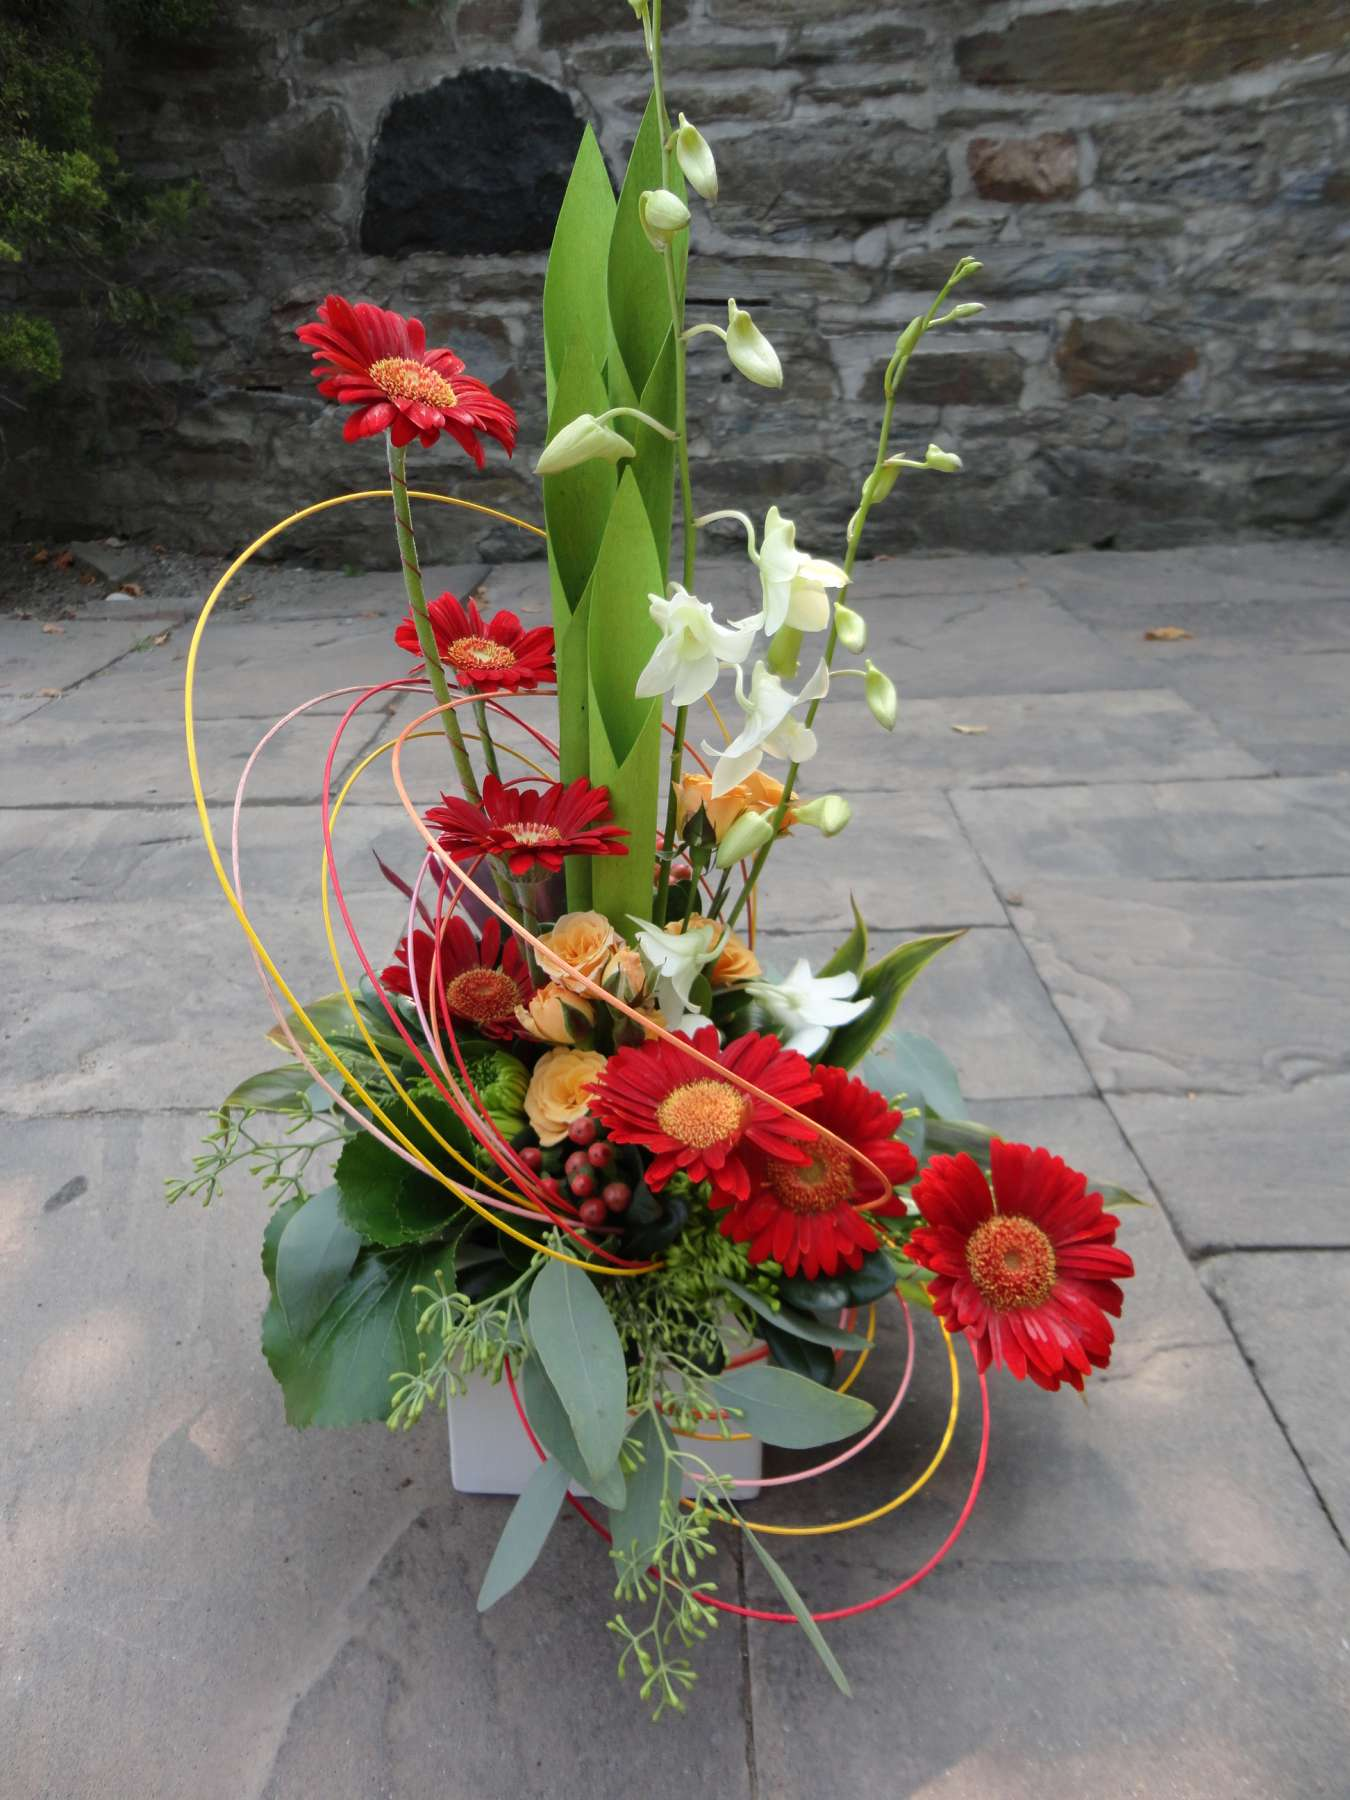 Birthday flowers beautiful flowers from the old mill toronto did you know that each month has a flower that symbolizes the month of somebodys birth every month has a flower that is sometimes referred to as a birth izmirmasajfo